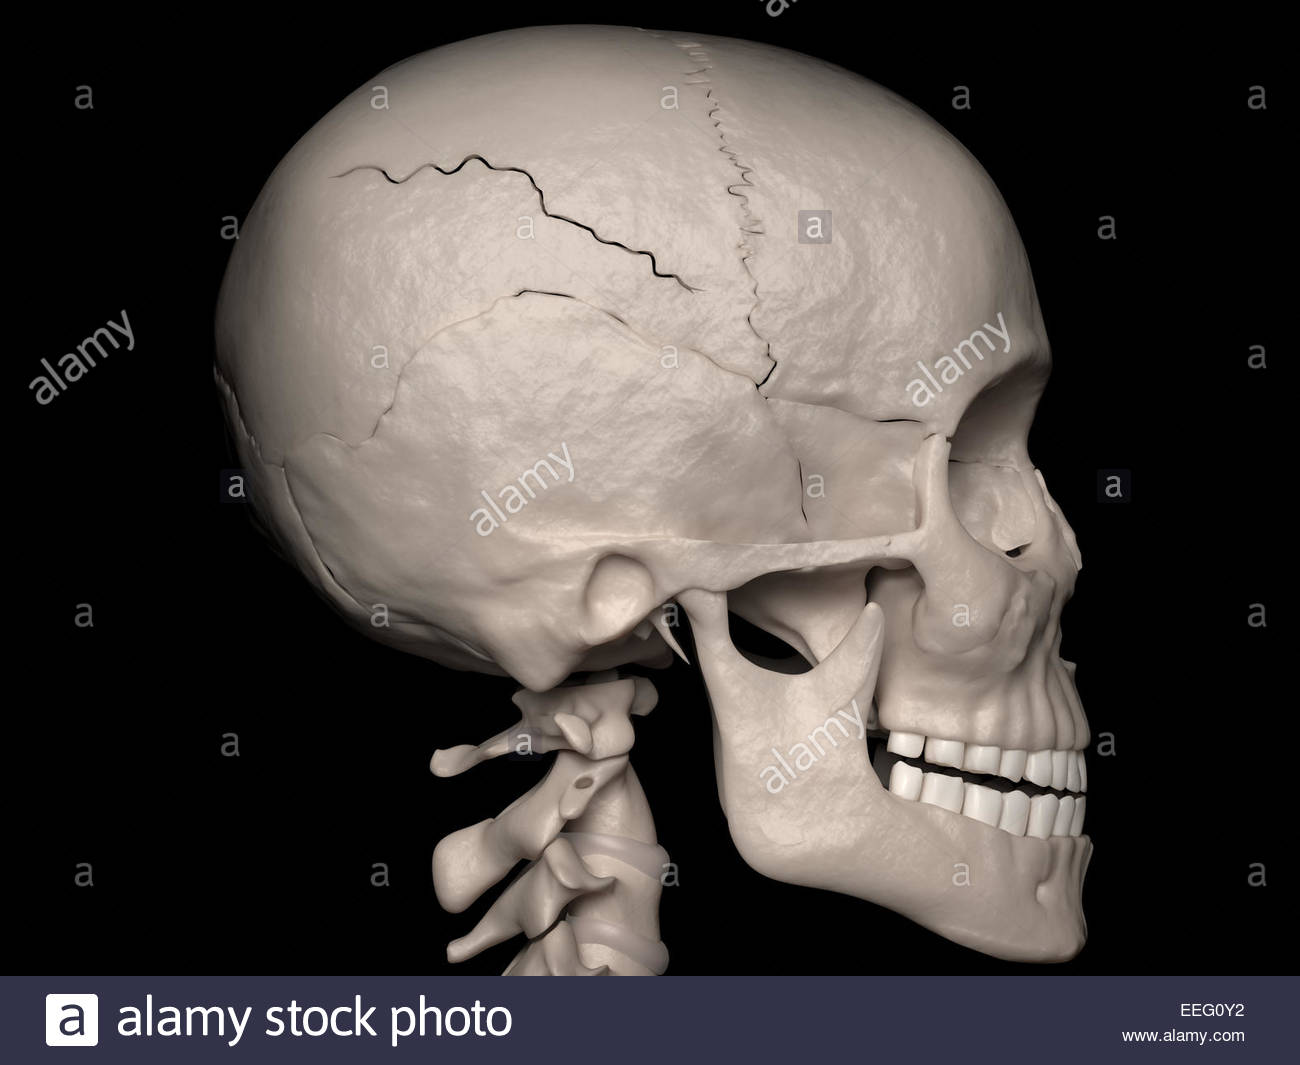 Linear Skull Fracture : Digital medical illustration depicting a linear cranial